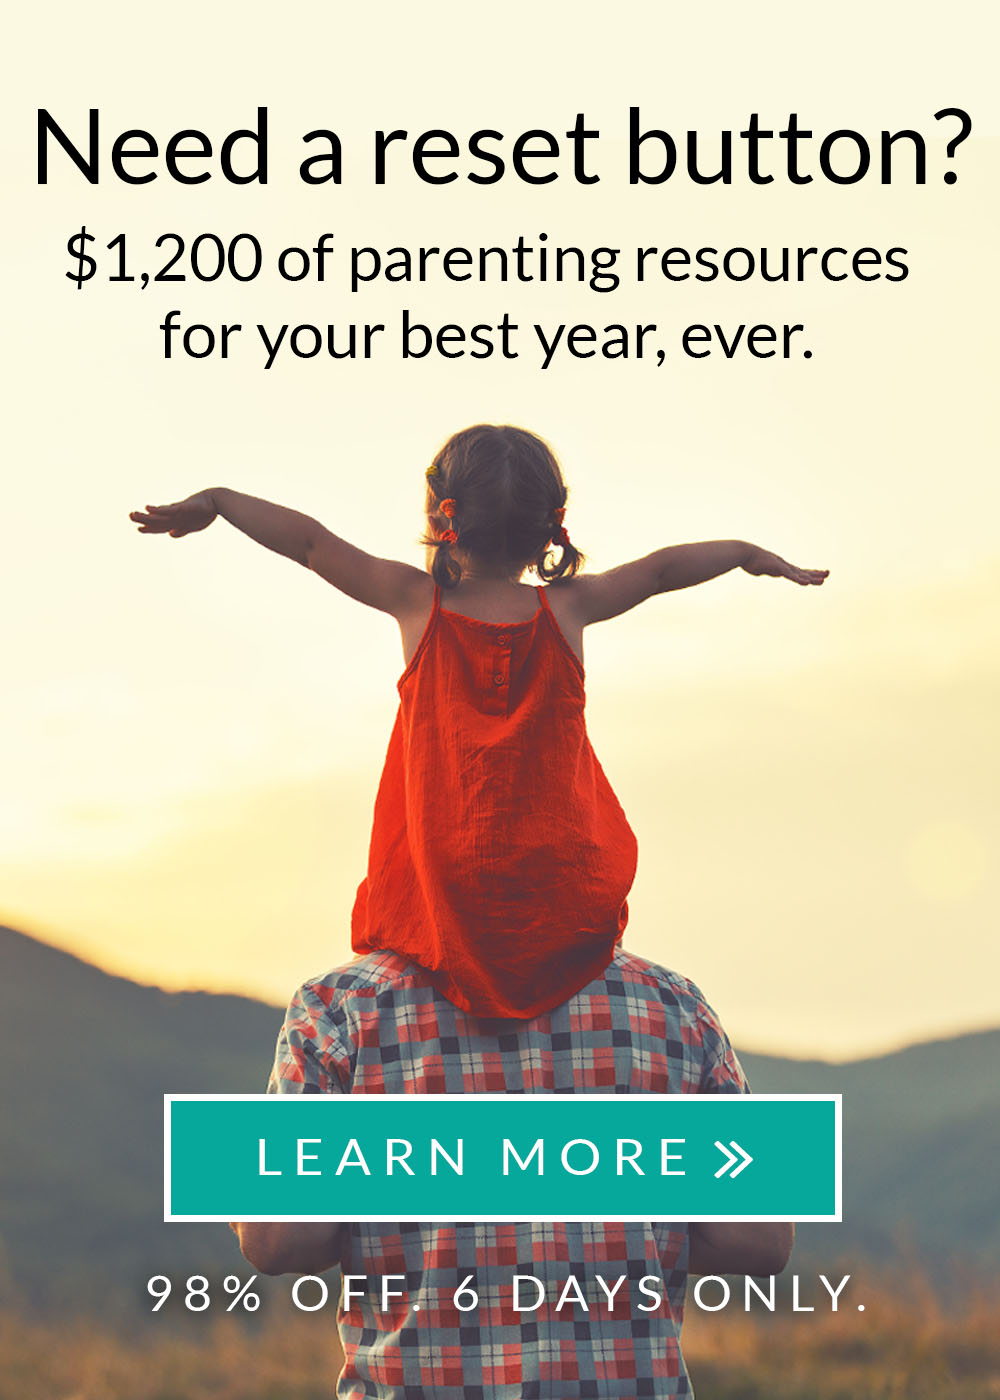 Parenting Super Bundle | Motherhood, Parenting, Kids, Bundle, Craft, Activities, Chores, Charts, Planners, Education, Faith, Food, Homeschooling, Outdoor, Travel, Parenthood, Special Needs, Special Occasions, Toddlers, Babies, Preschoolers,